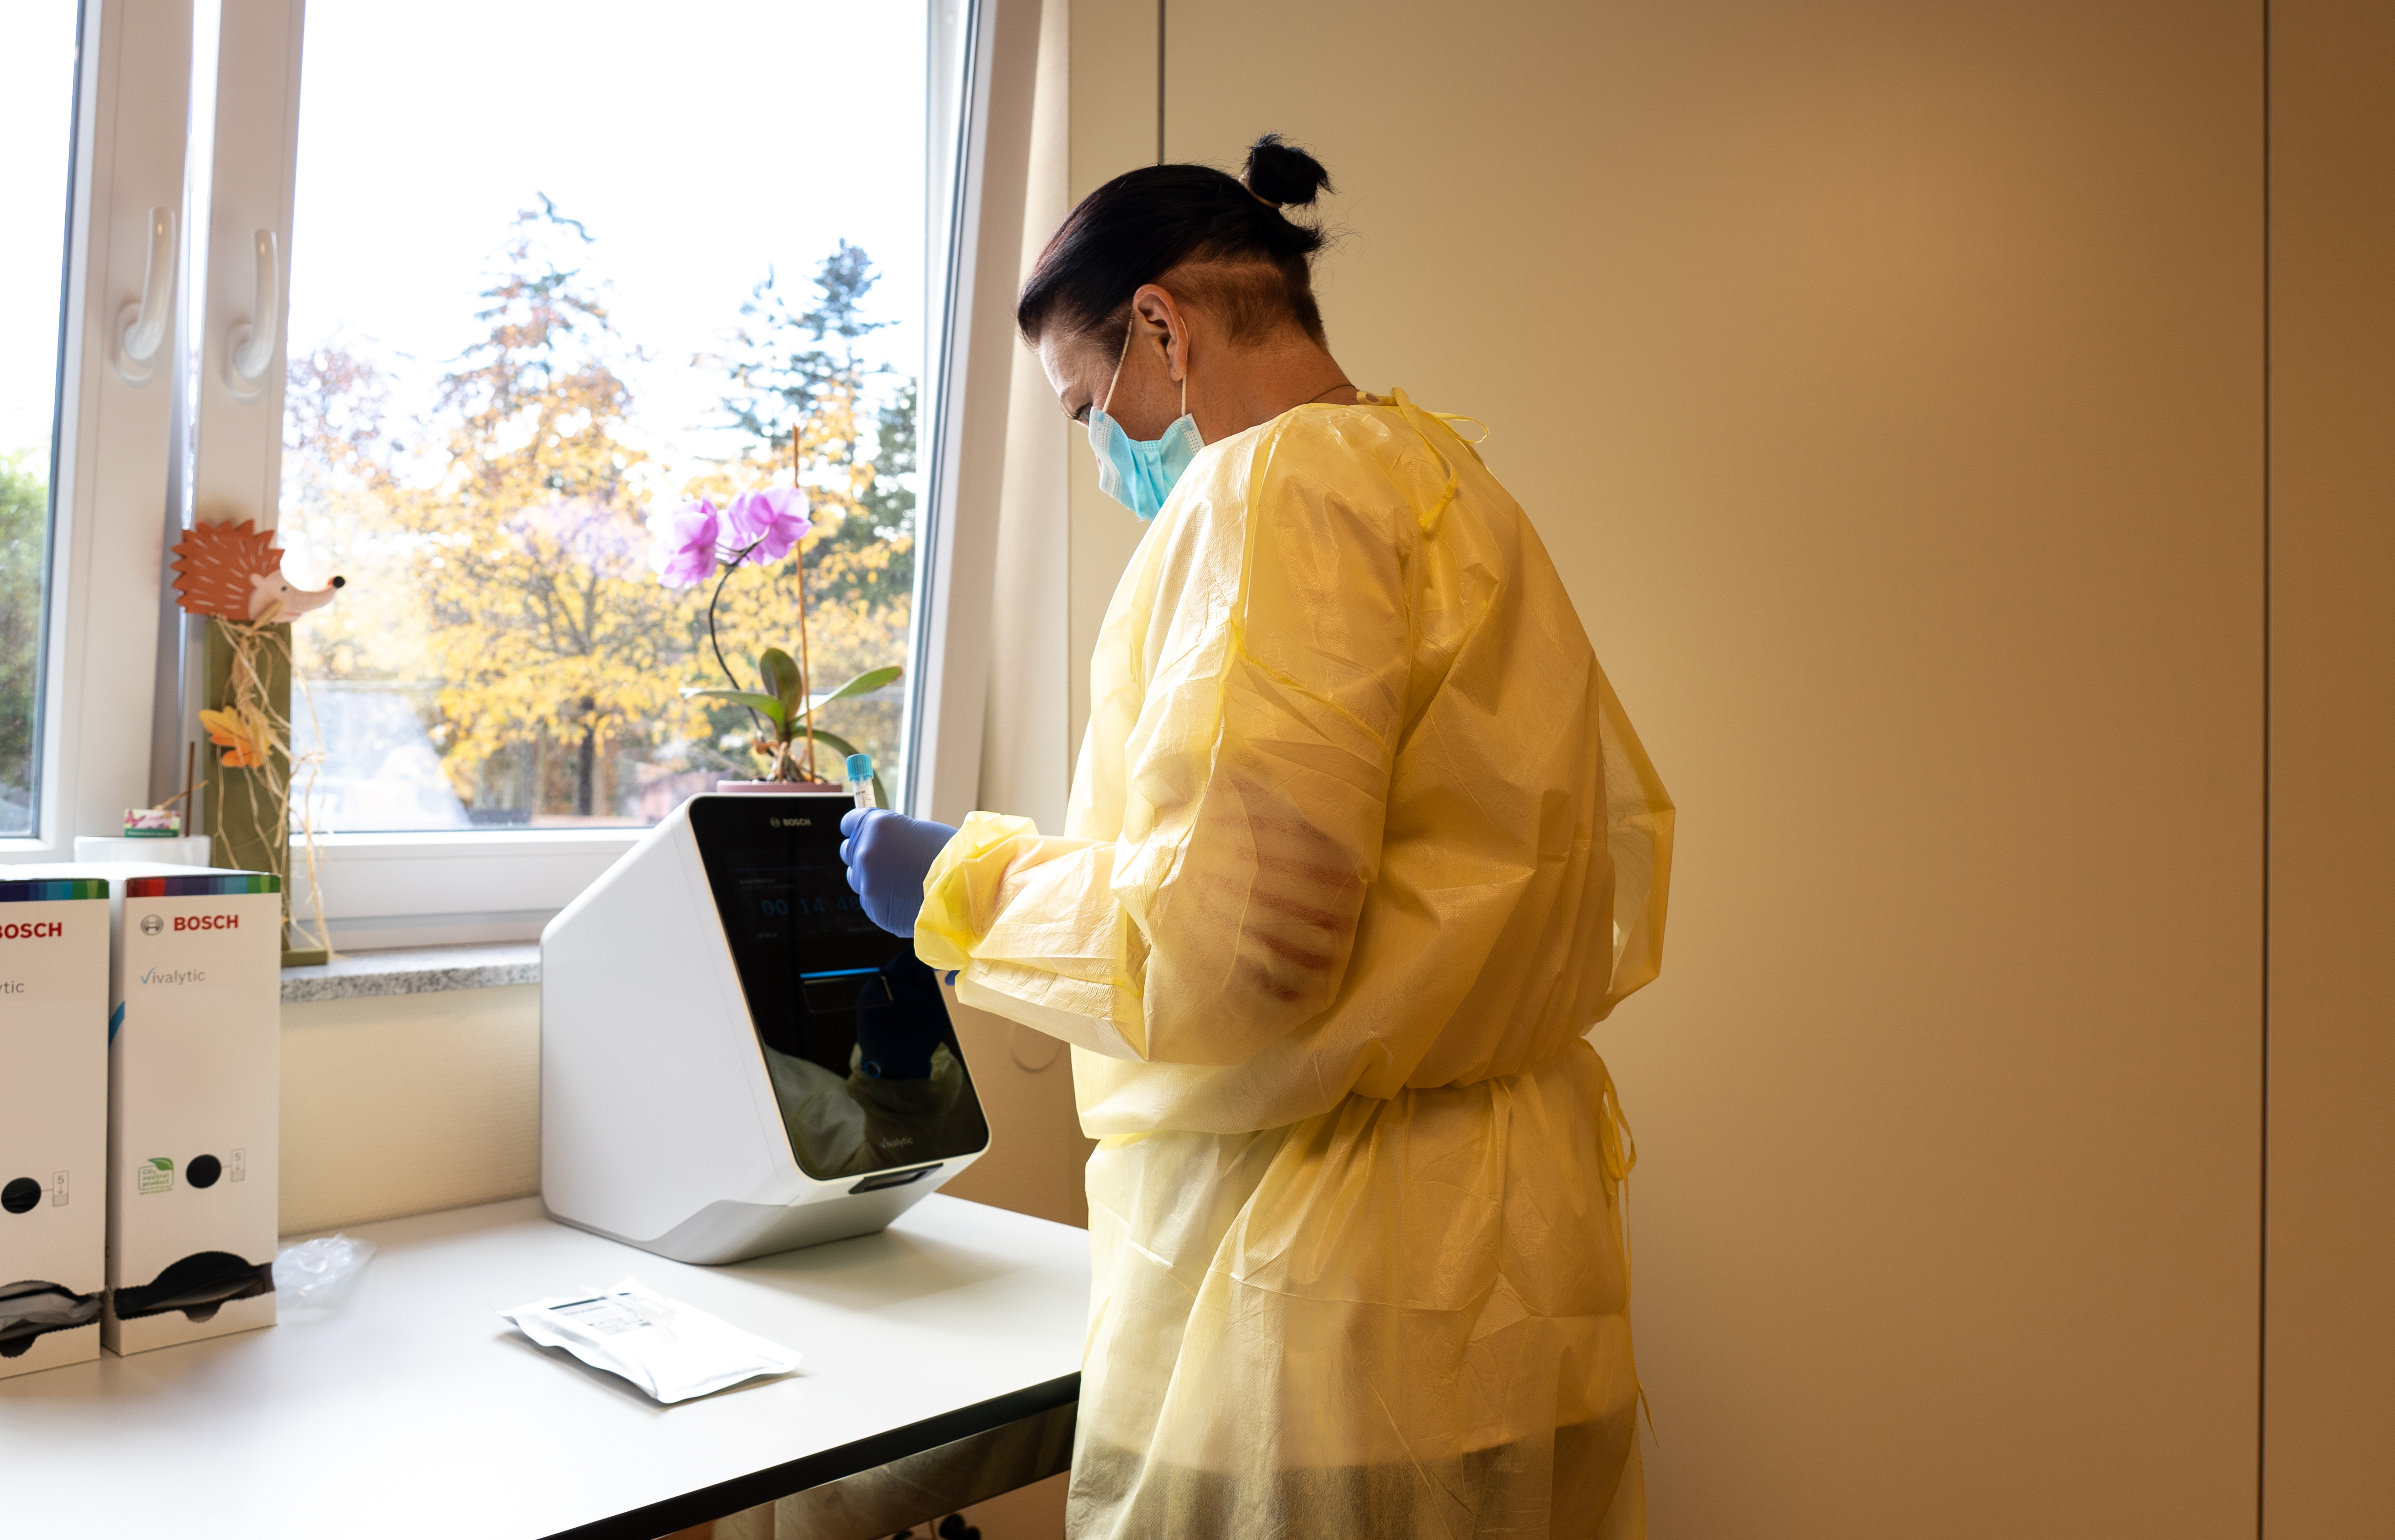 Sample evaluation with Bosch Vivalytic in a nursing home